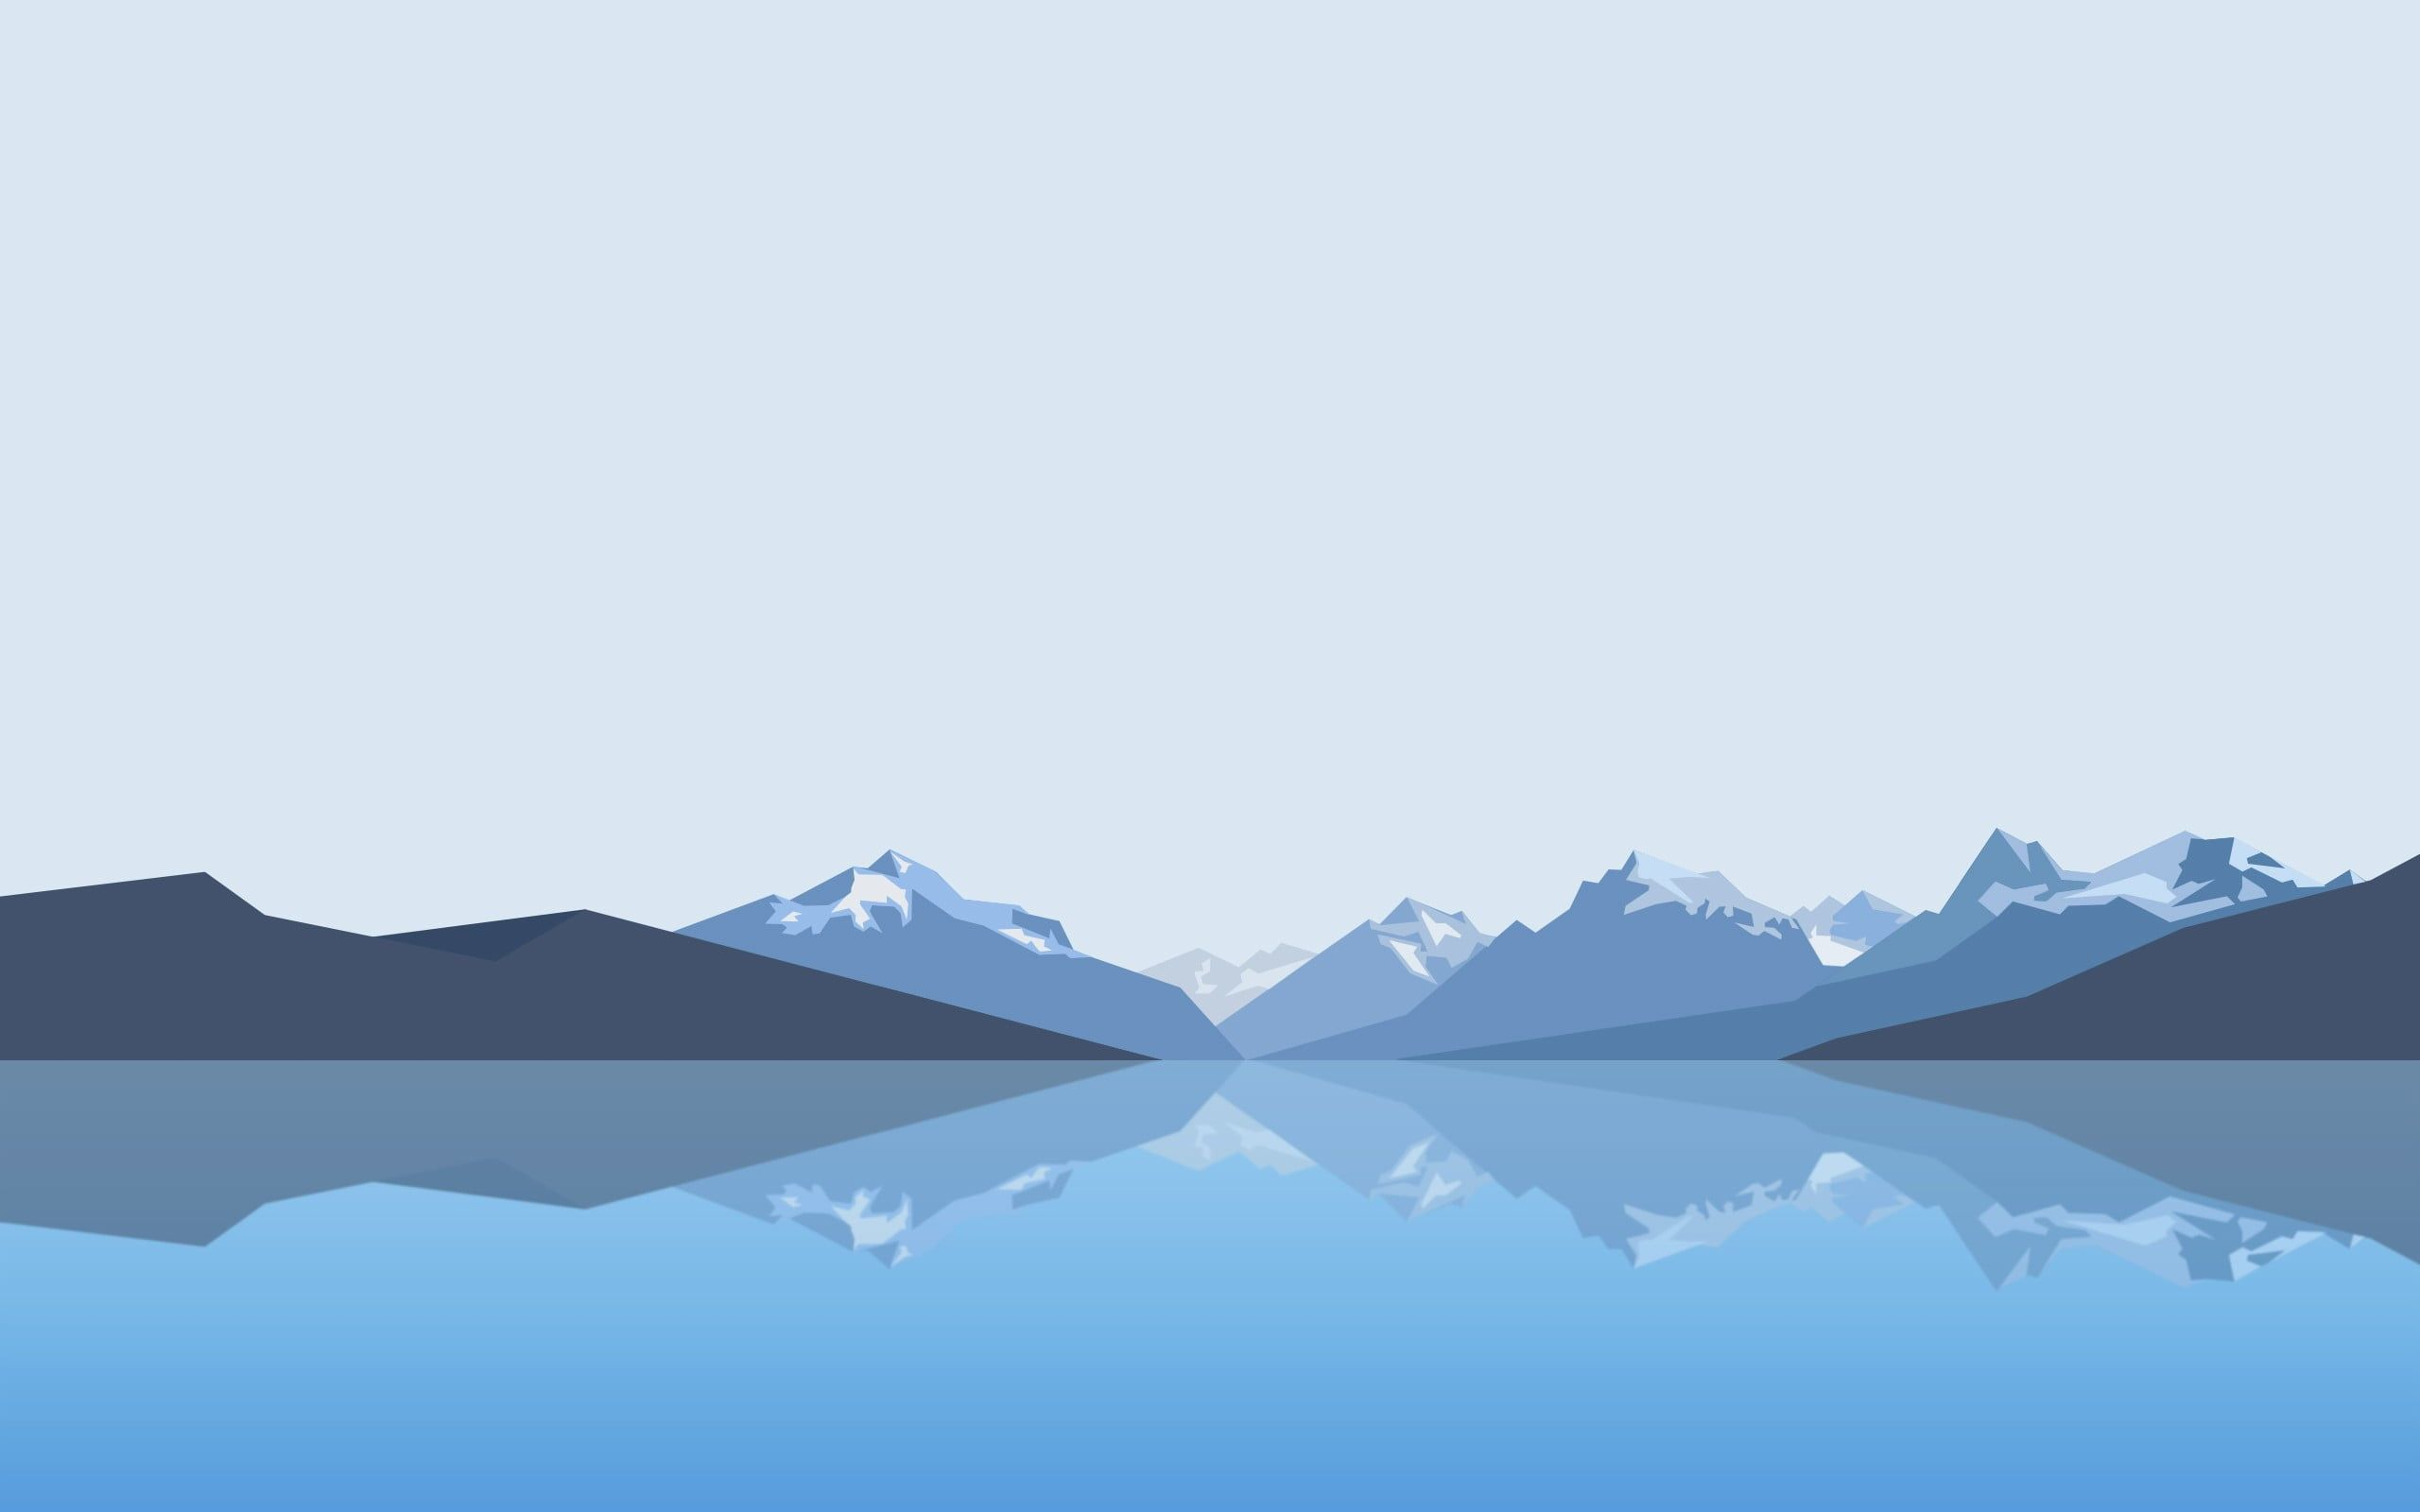 Blue And Gray Mountain Wallpaper Minimalism Landscape Mountains